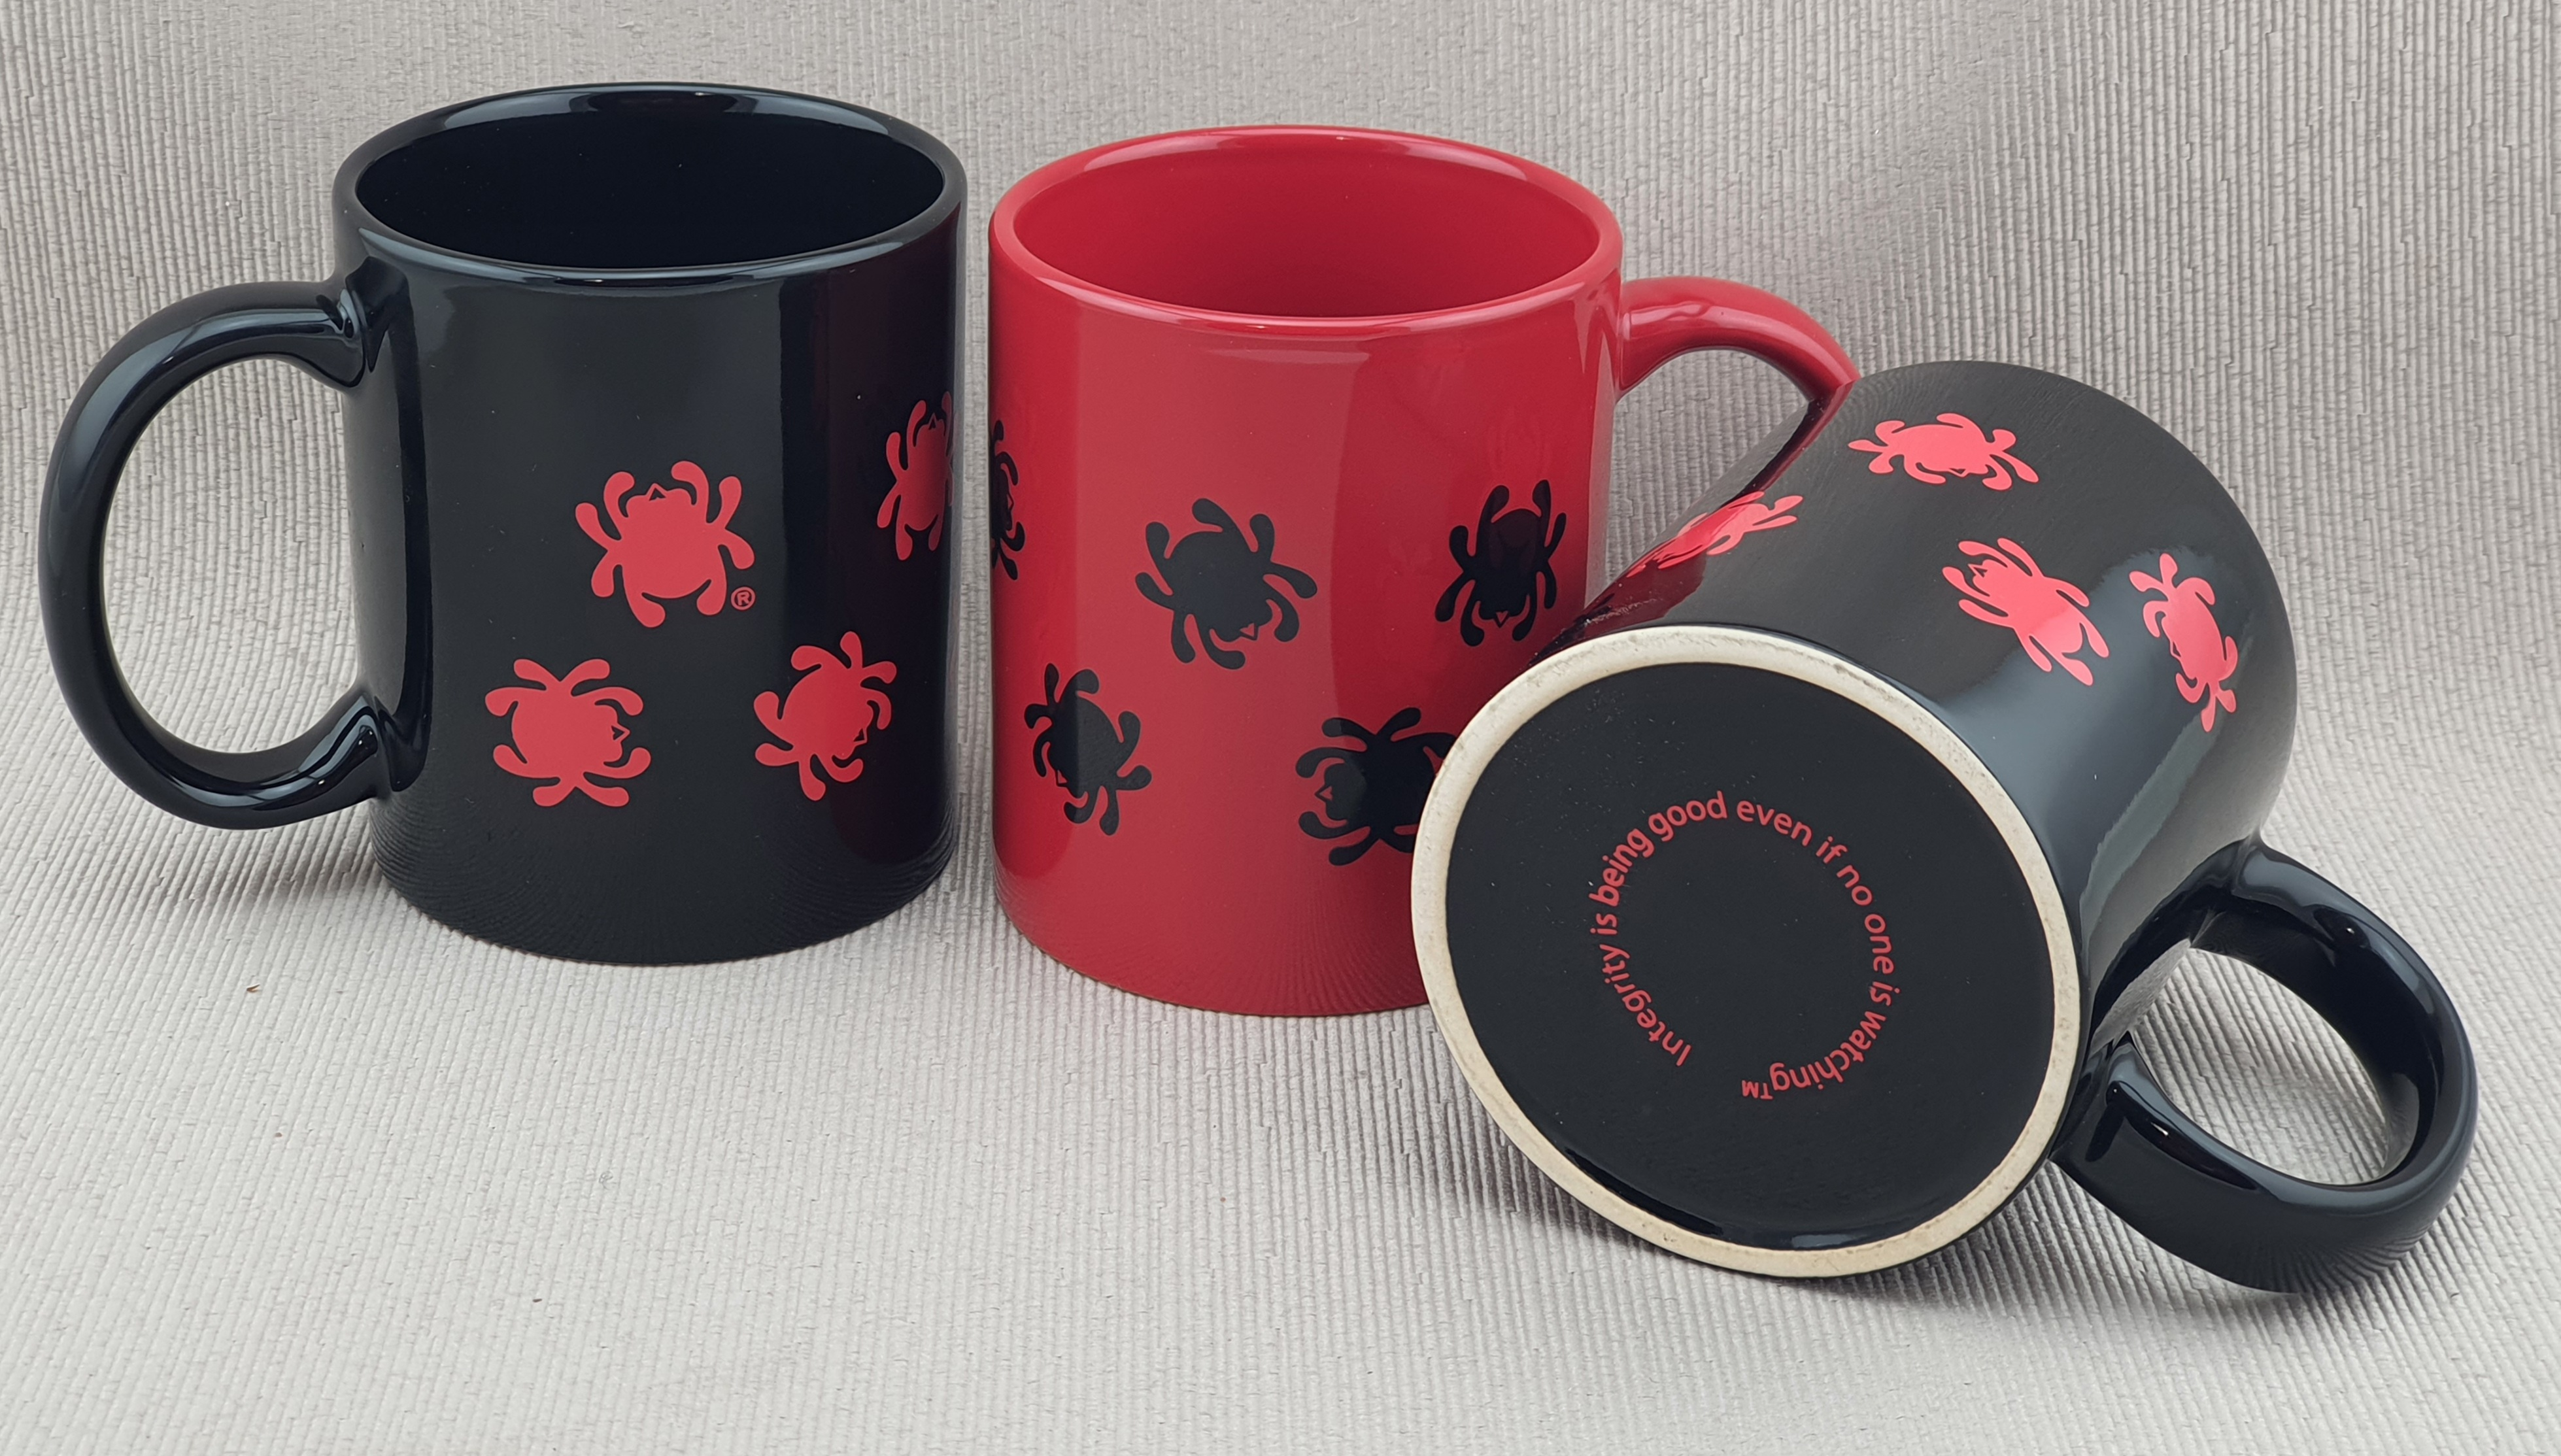 Spyderco Mugs red and black